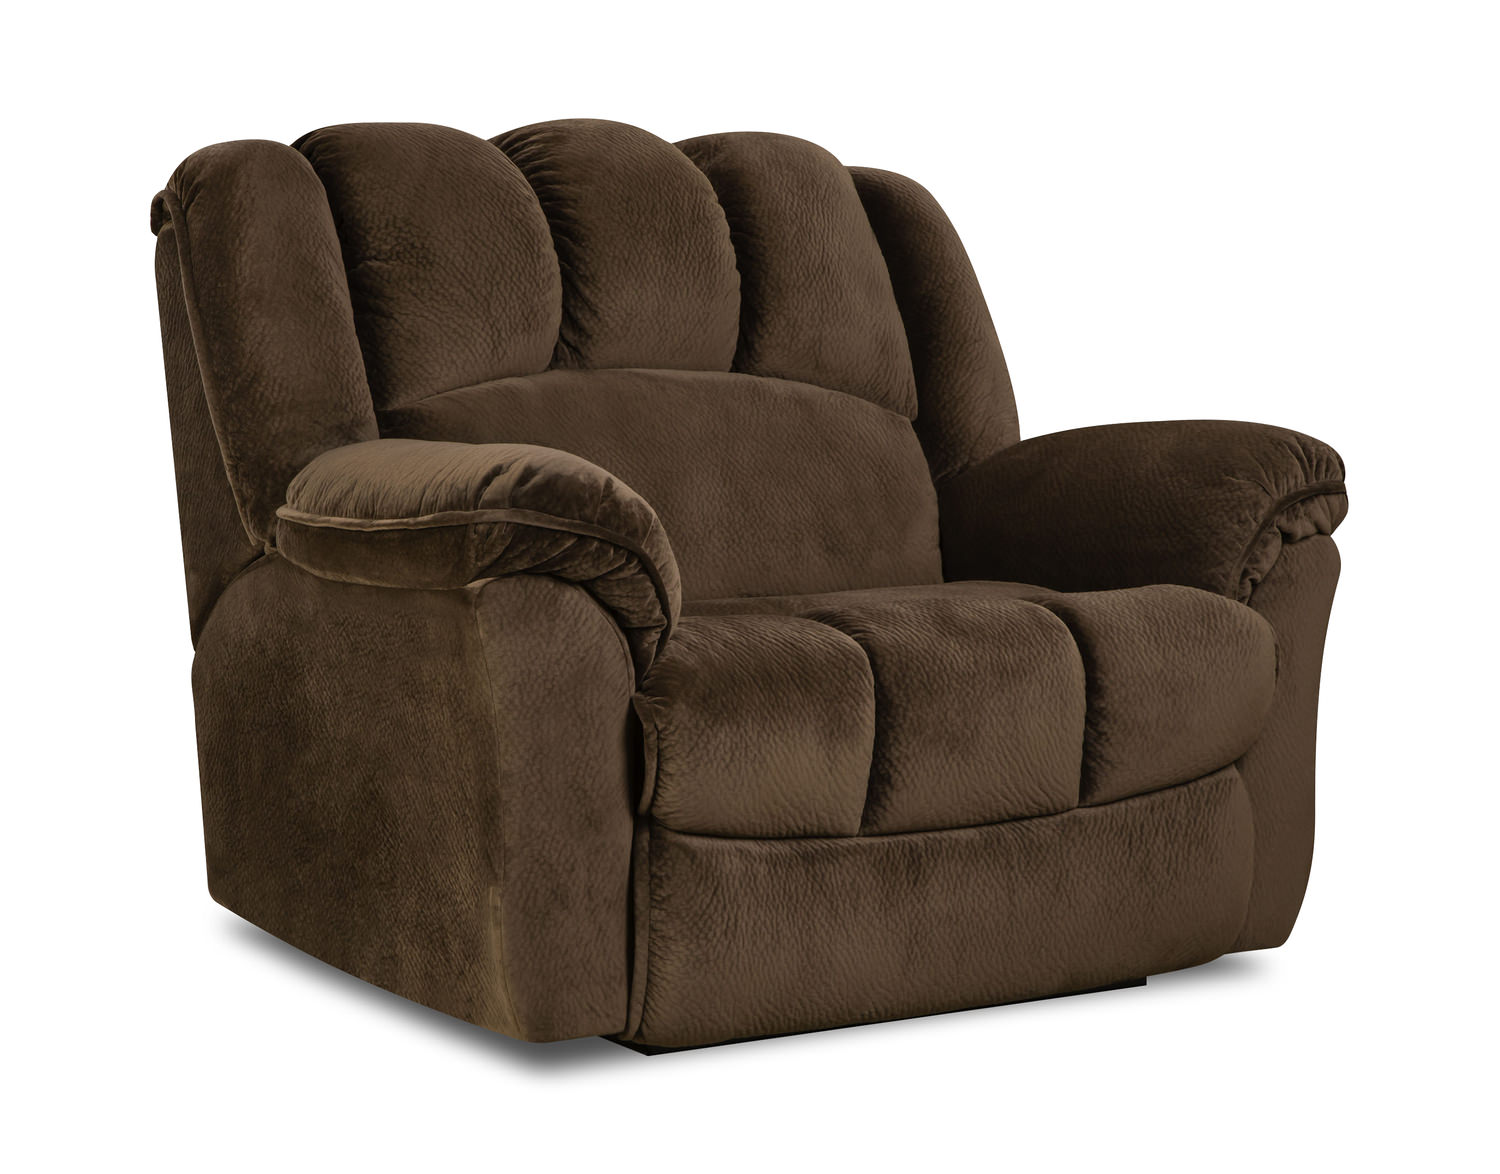 Custer Cuddler Recliner Custer Cuddler Recliner  sc 1 st  HOM Furniture & Custer Cuddler Recliner | HOM Furniture islam-shia.org